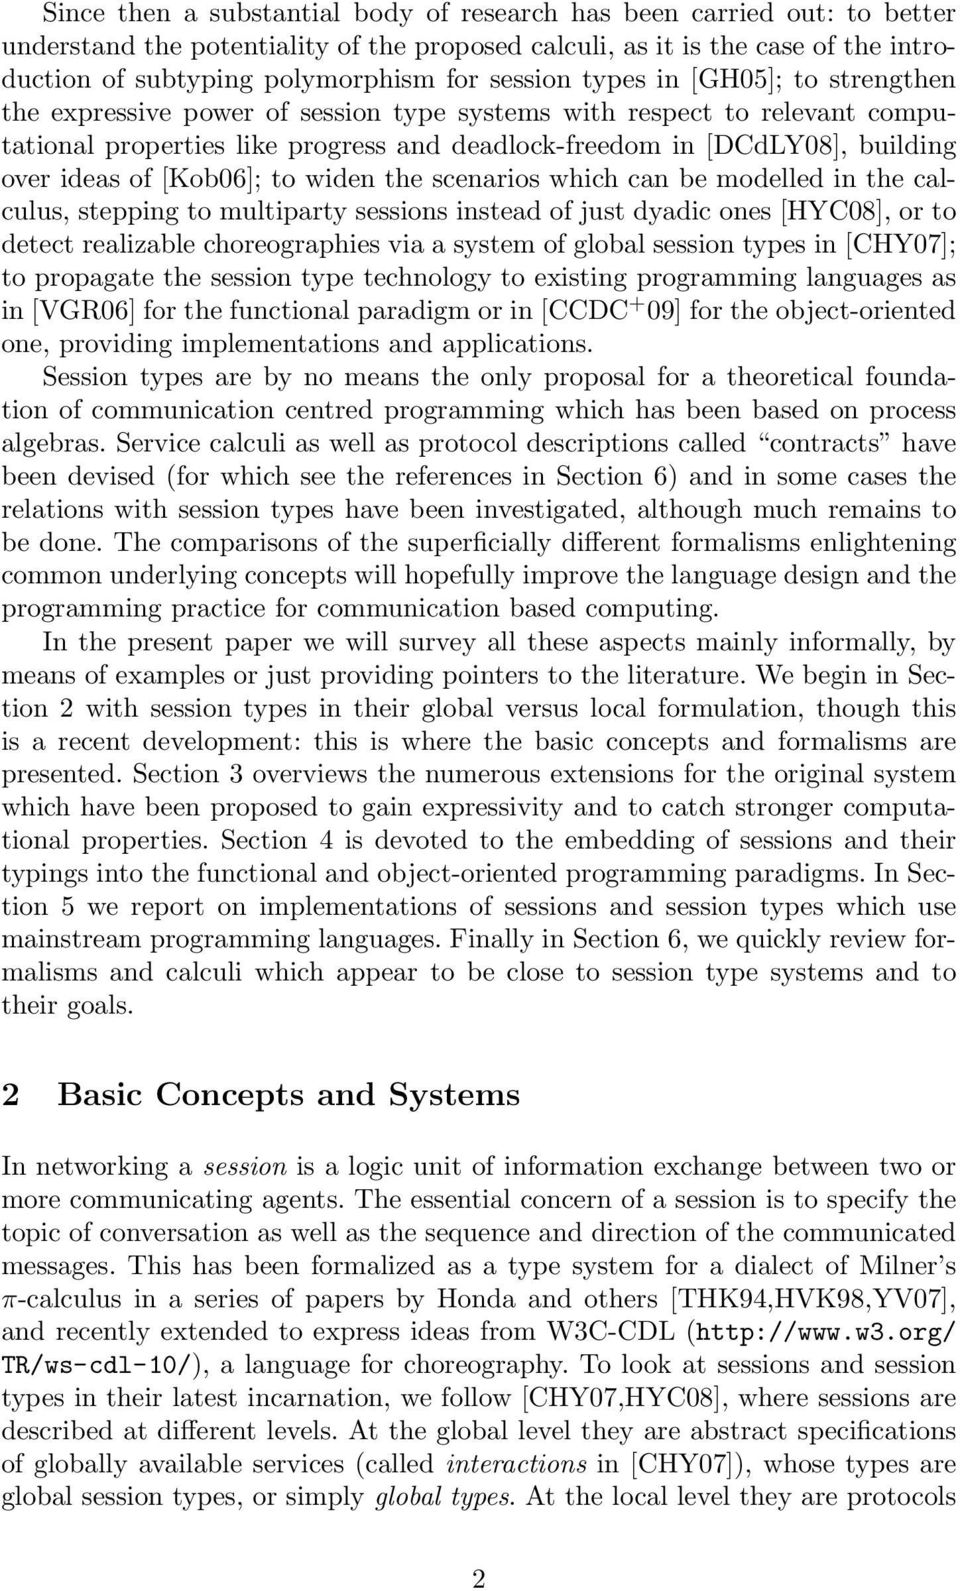 ideas of [Kob06]; to widen the scenarios which can be modelled in the calculus, stepping to multiparty sessions instead of just dyadic ones [HYC08], or to detect realizable choreographies via a